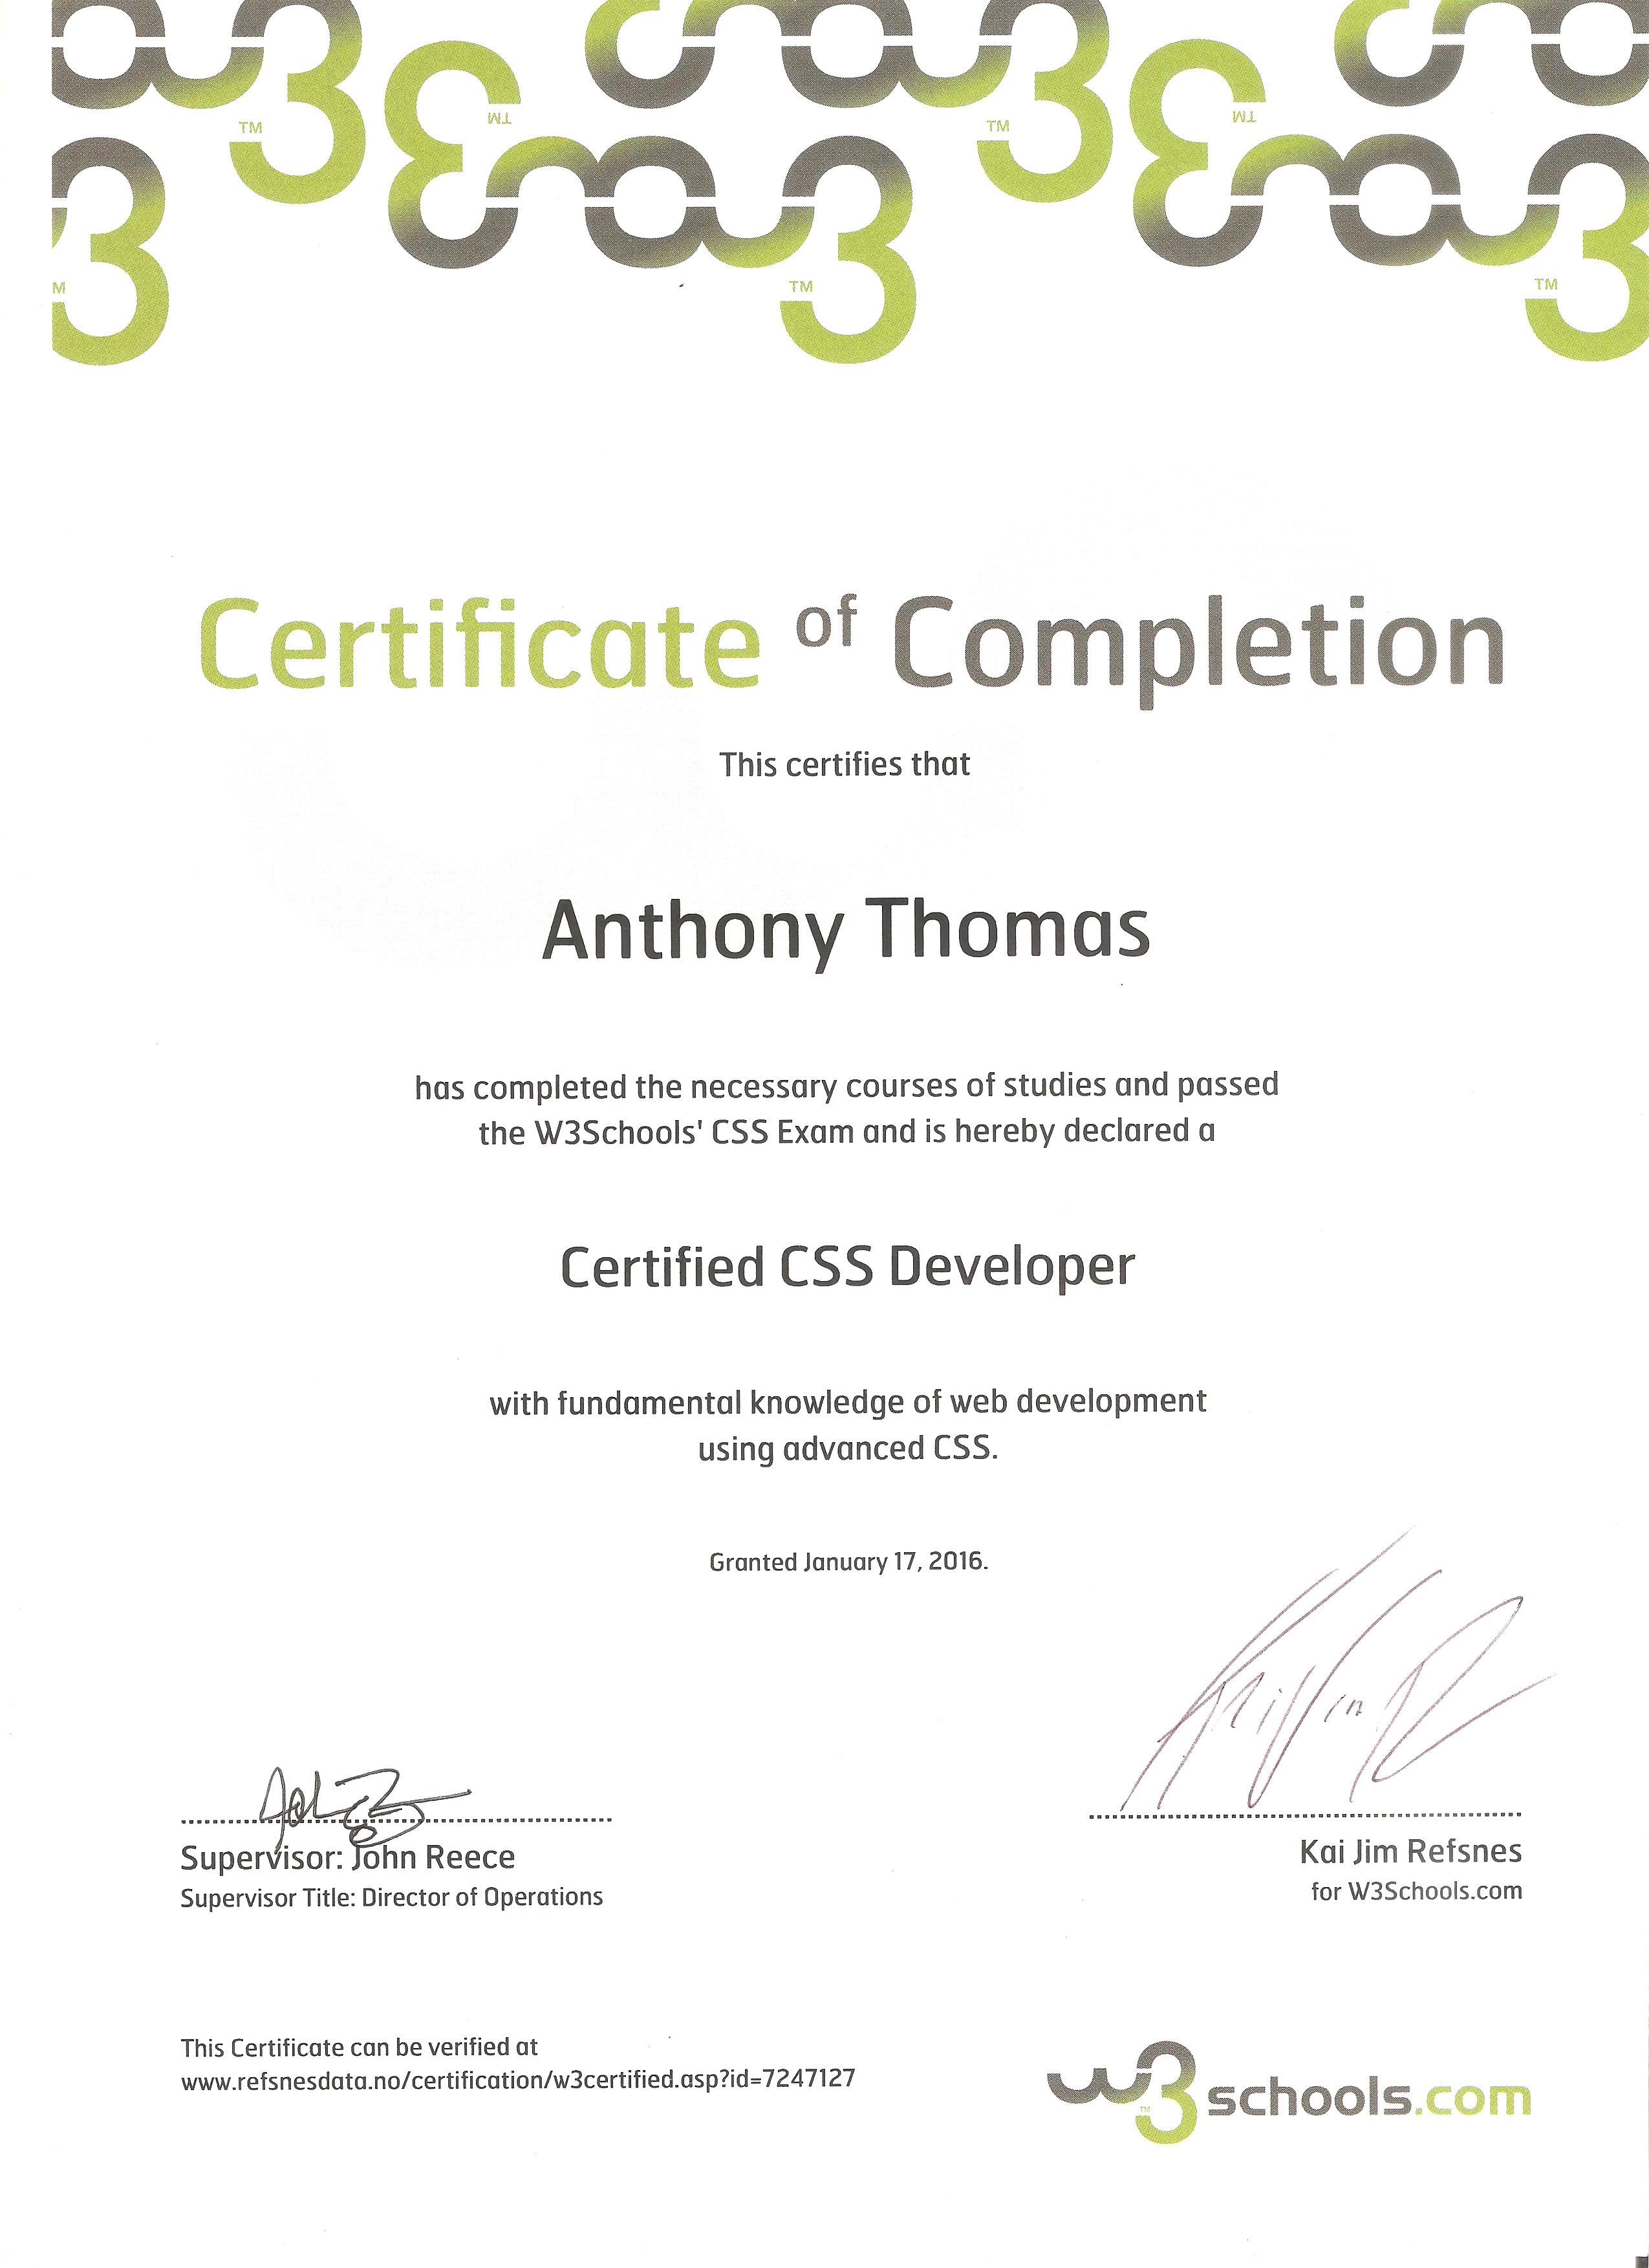 Anthony thomas resume july 2013 html developers certificate w3schools fall 2003 introduction to computers houston community college 1989 ged from the state of california xflitez Choice Image